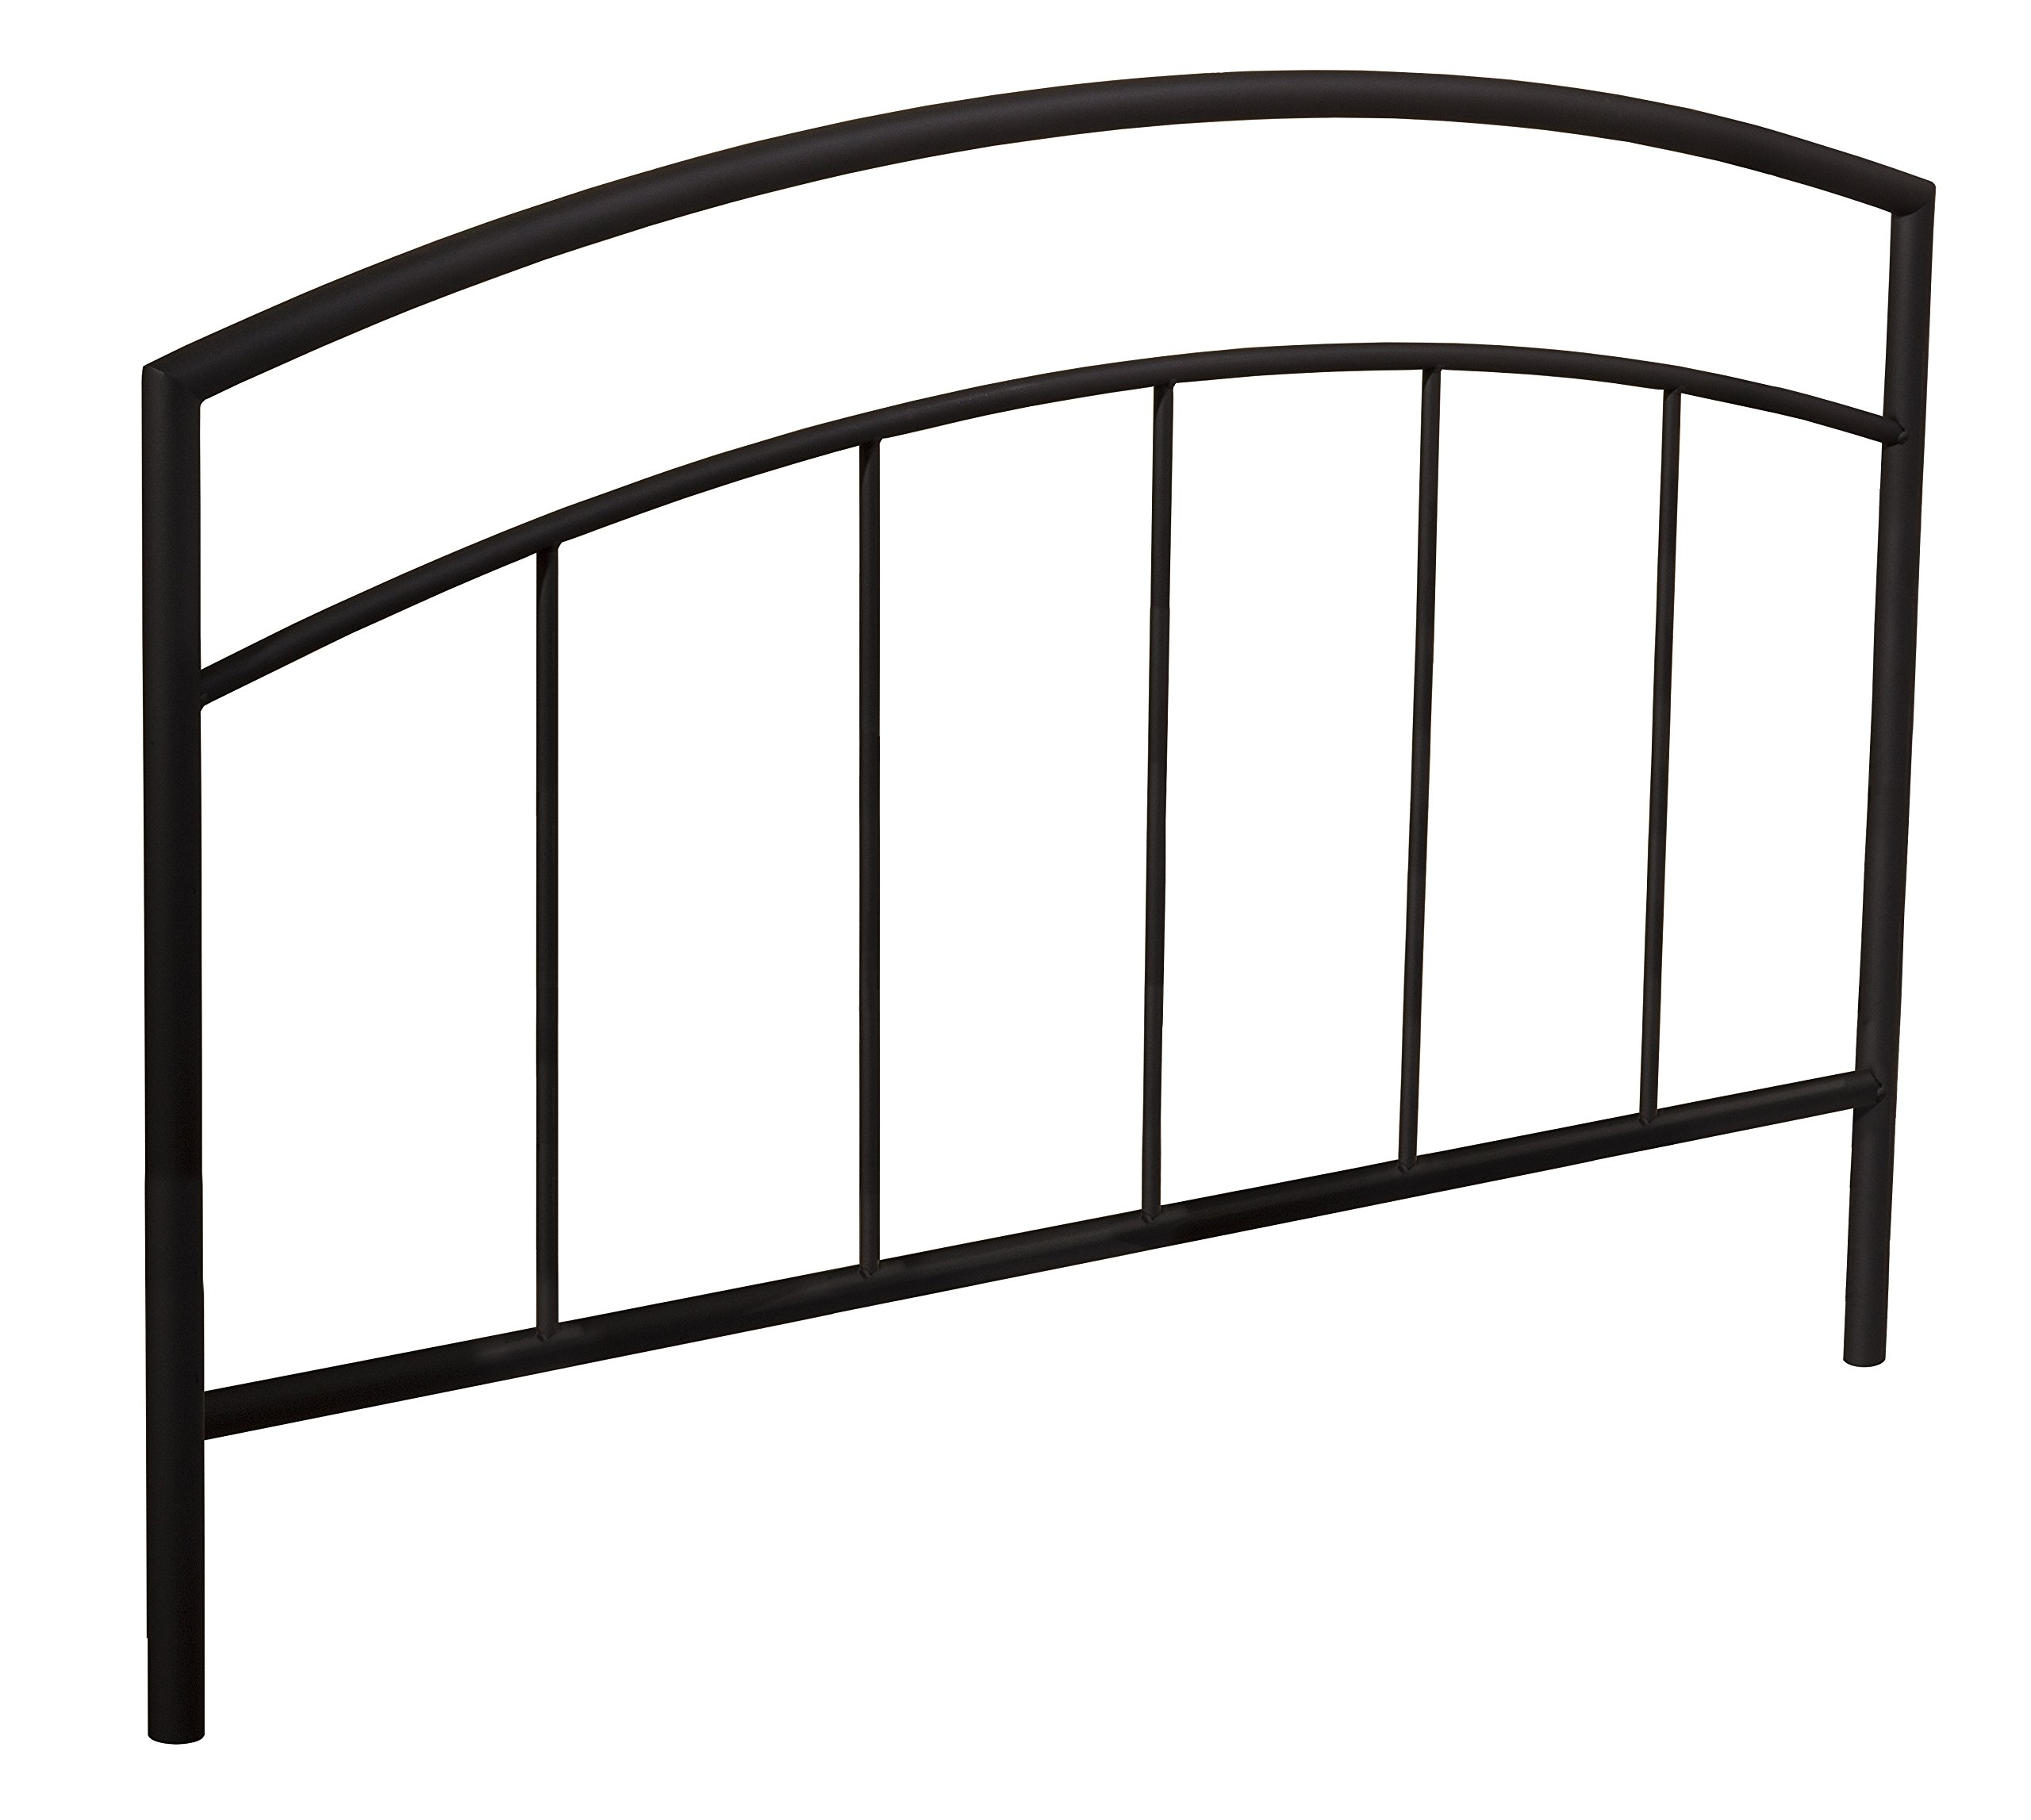 Hillsdale Furniture 1169-34 Hillsdale Julien Without Bed Frame Twin Headboard, Textured Black by Hillsdale Furniture